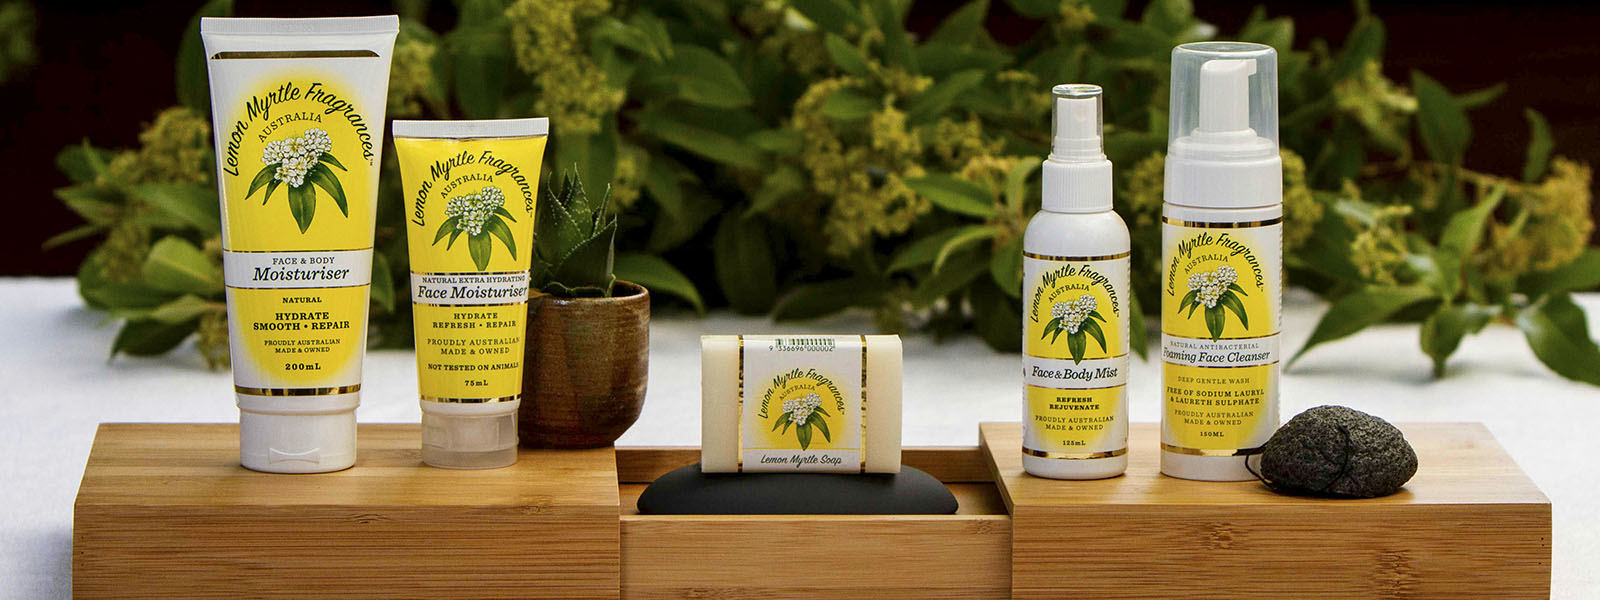 bamboo table with Lemon Myrtle skincare